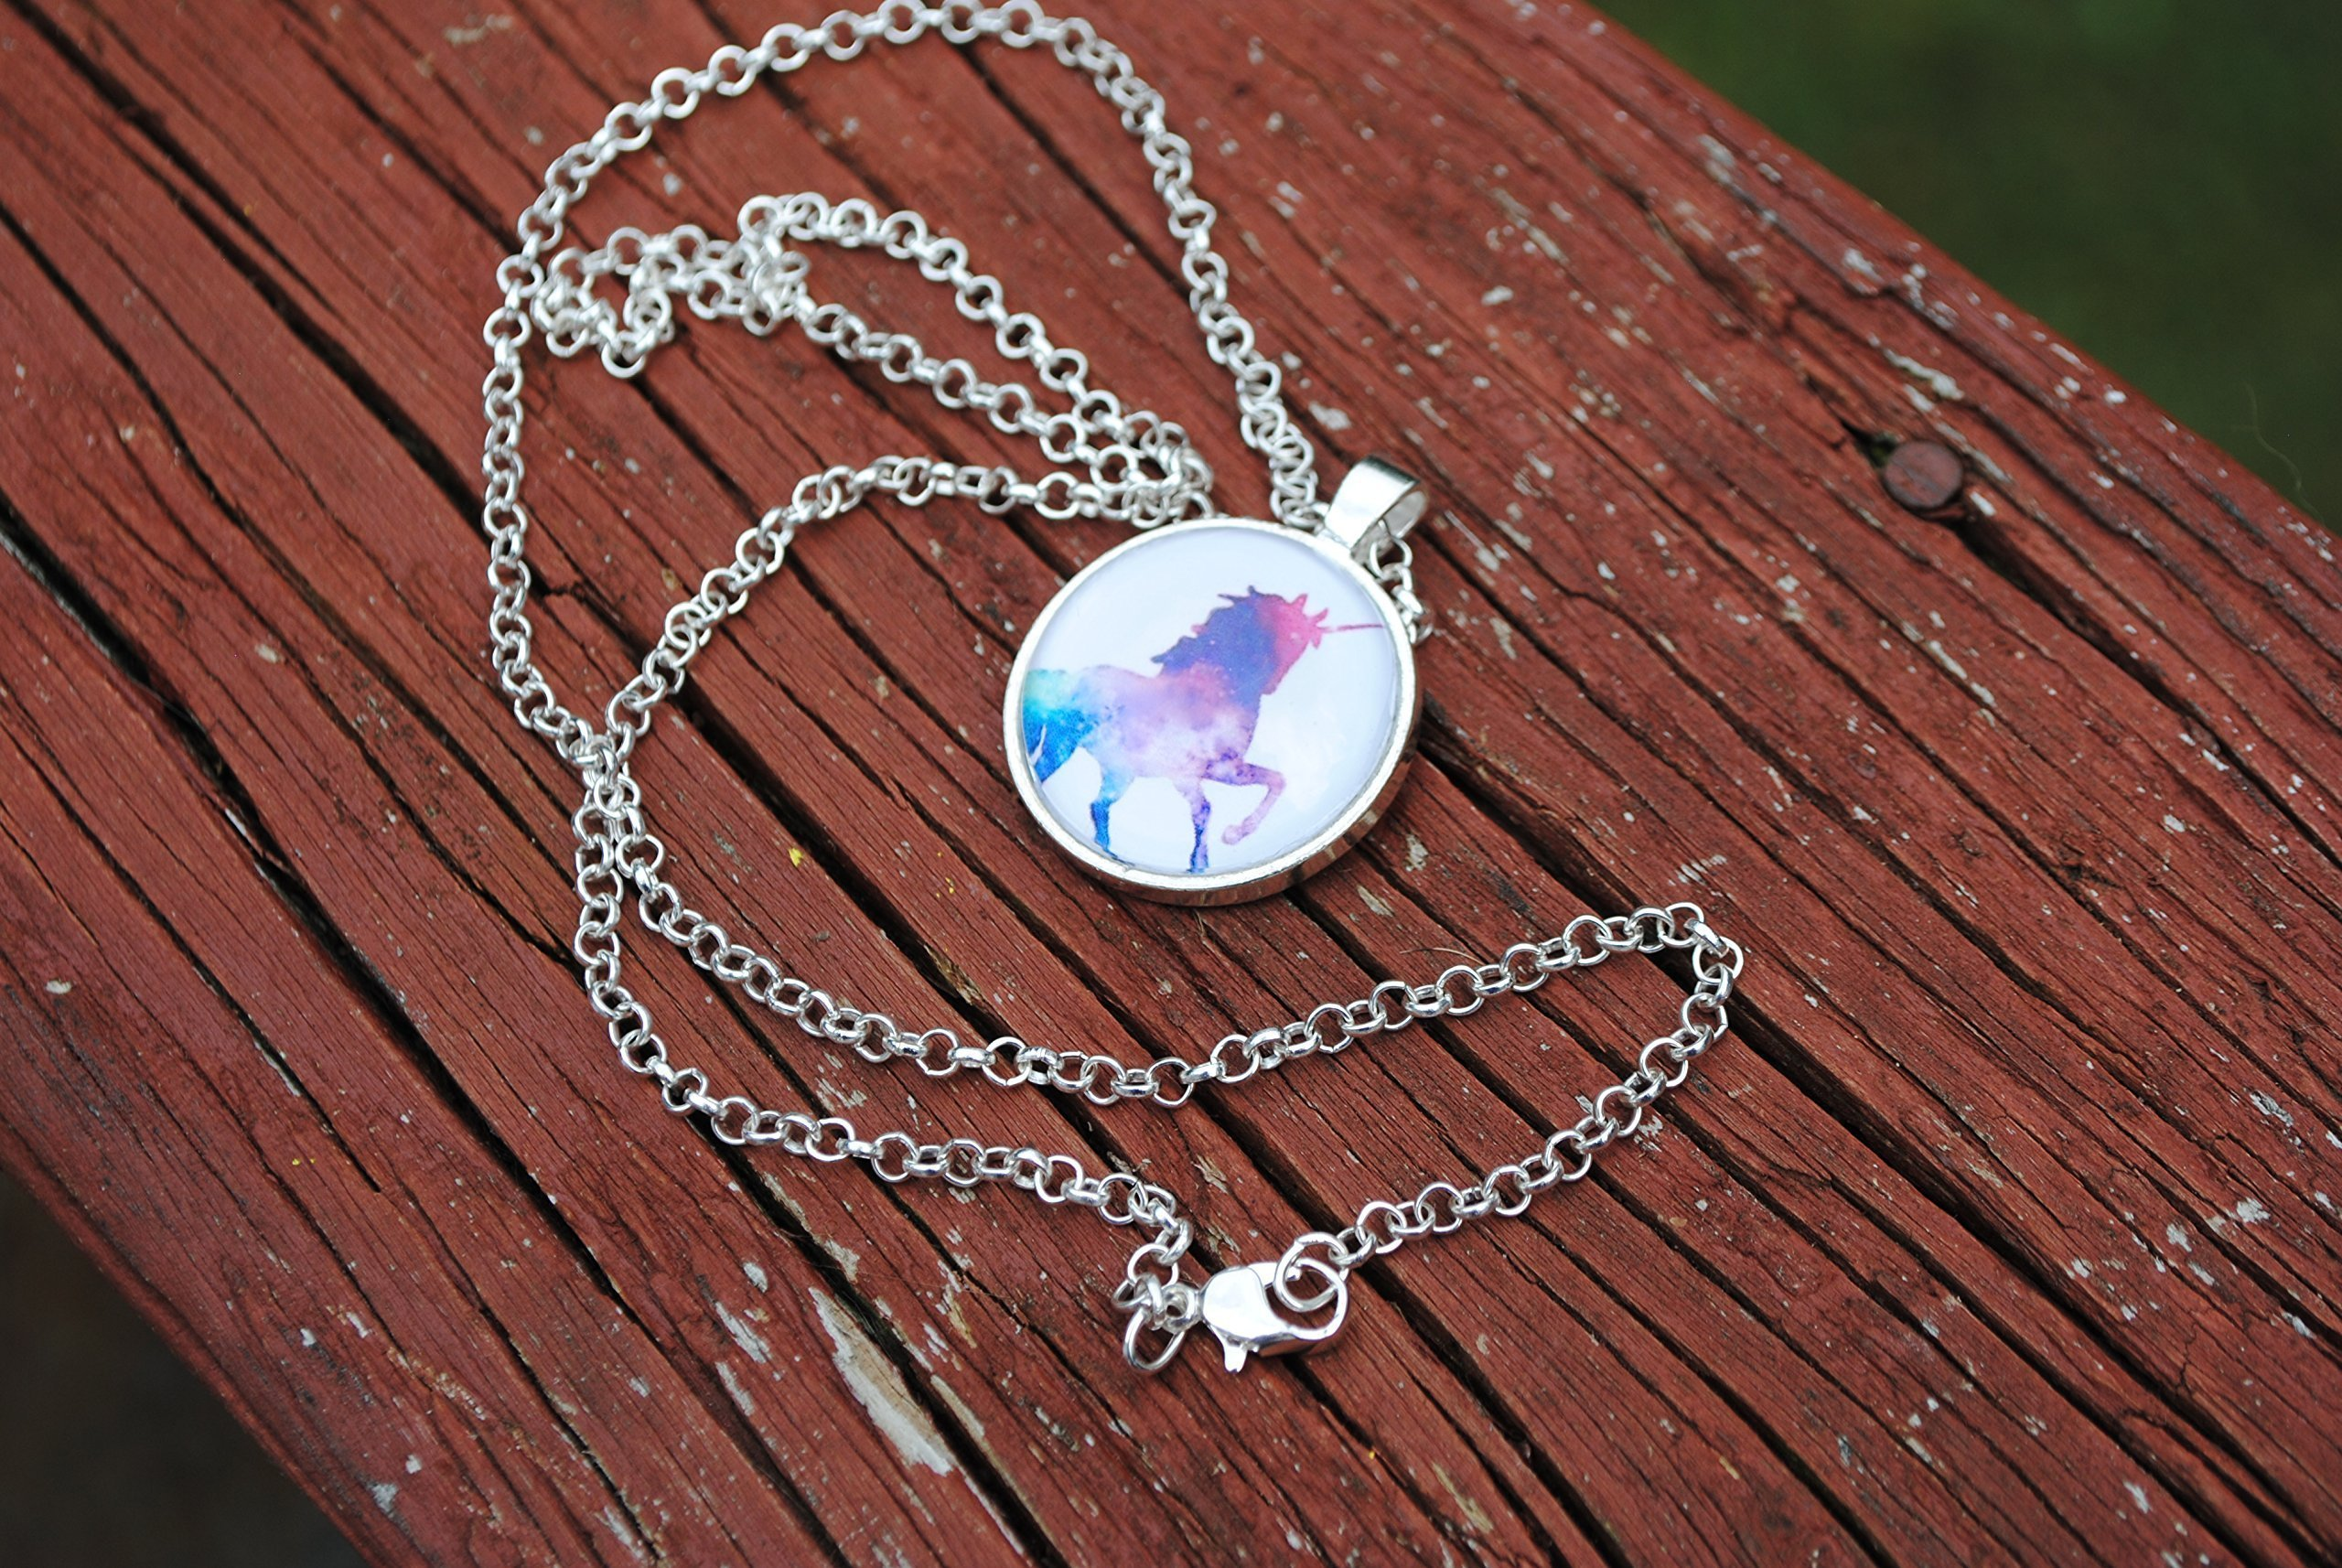 Magical Rainbow Unicorn Glass Dome Circle Pendant Necklace 24 Inch Chain Jewelry 5